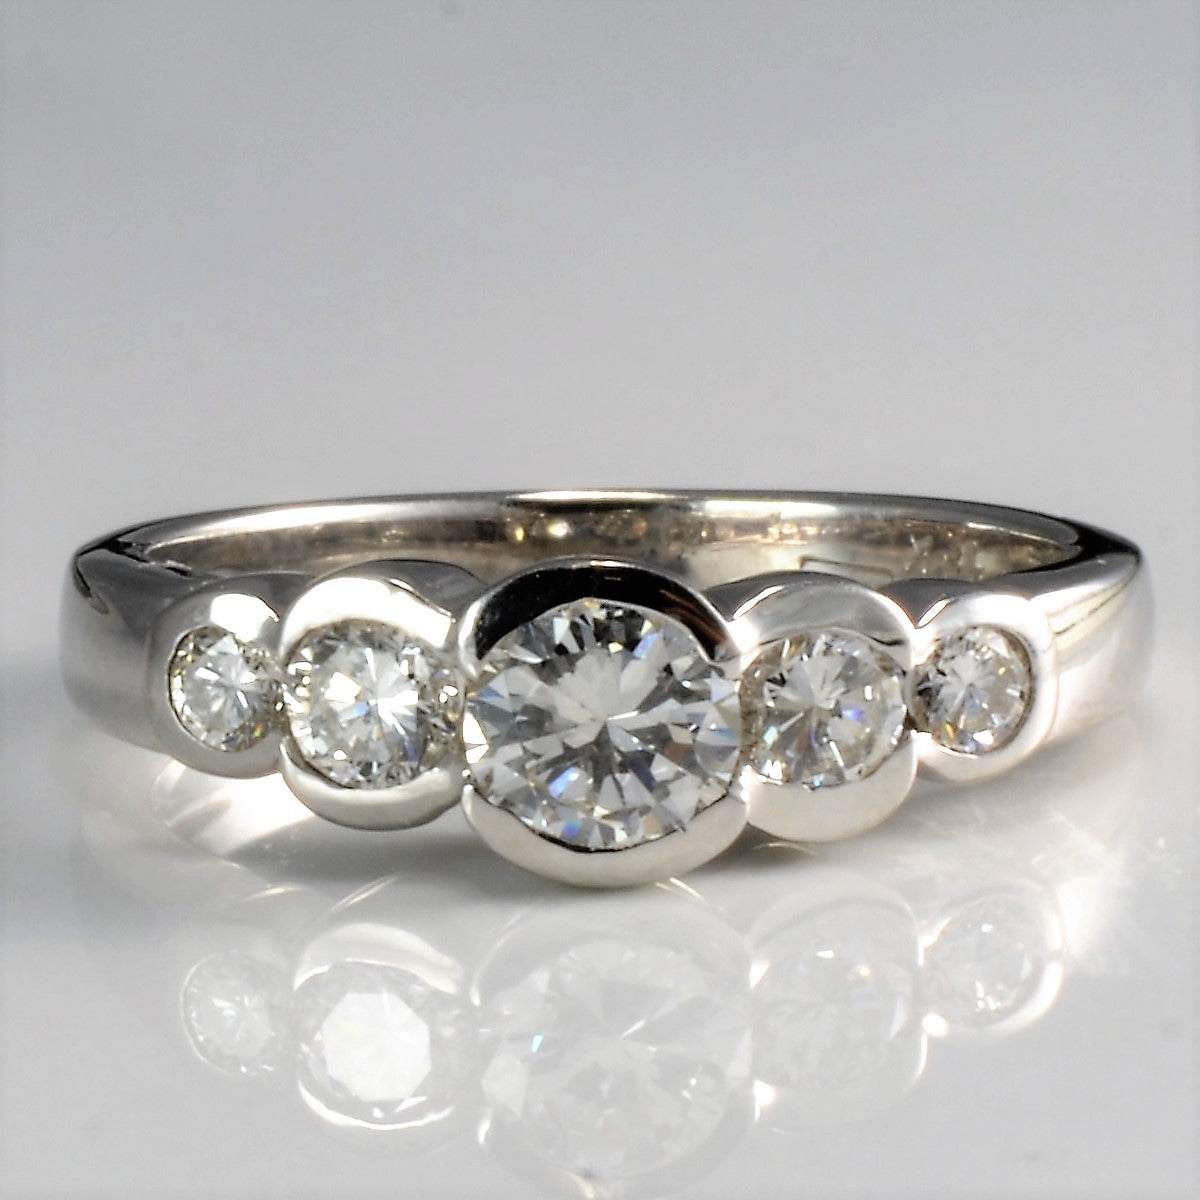 Five Stone Semi Bezel Set Diamond Engagement Ring | 0.65 ctw, SZ 5.75 |